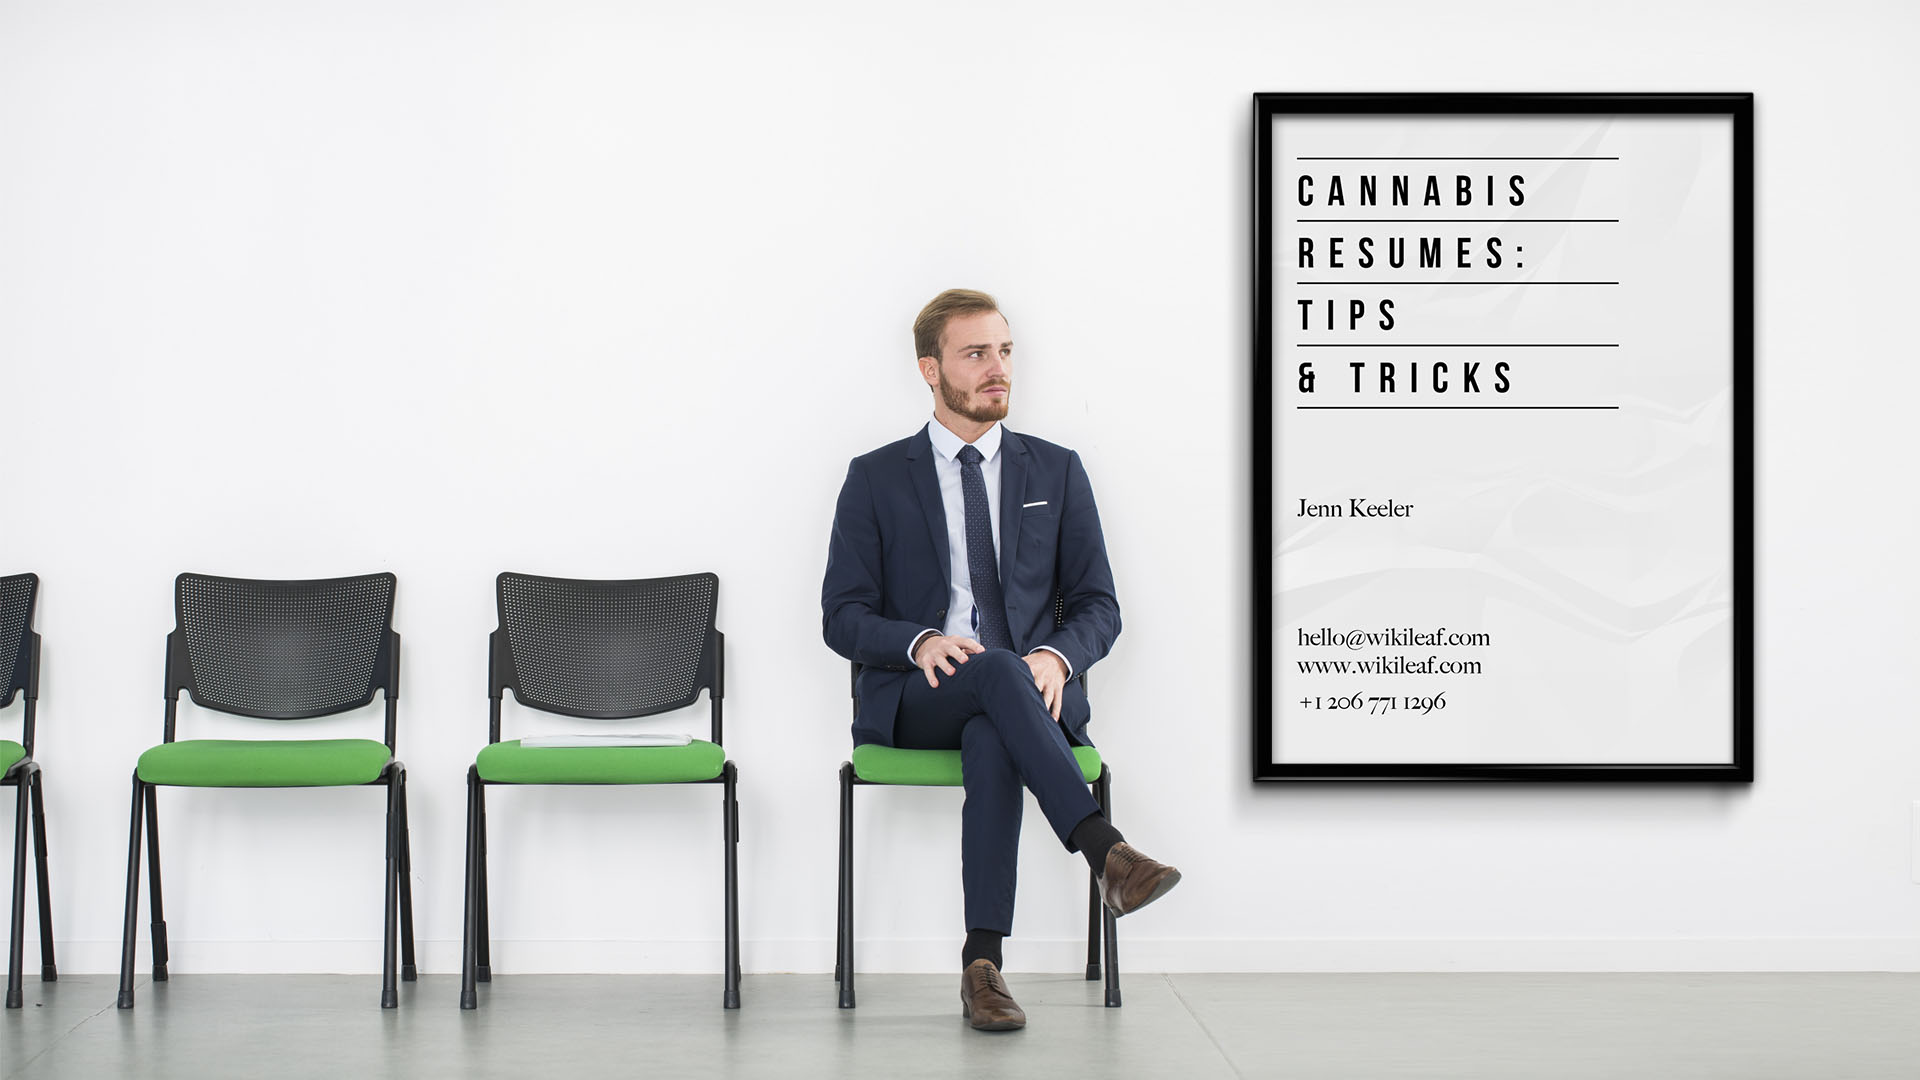 Here's what to put on your cannabis resume